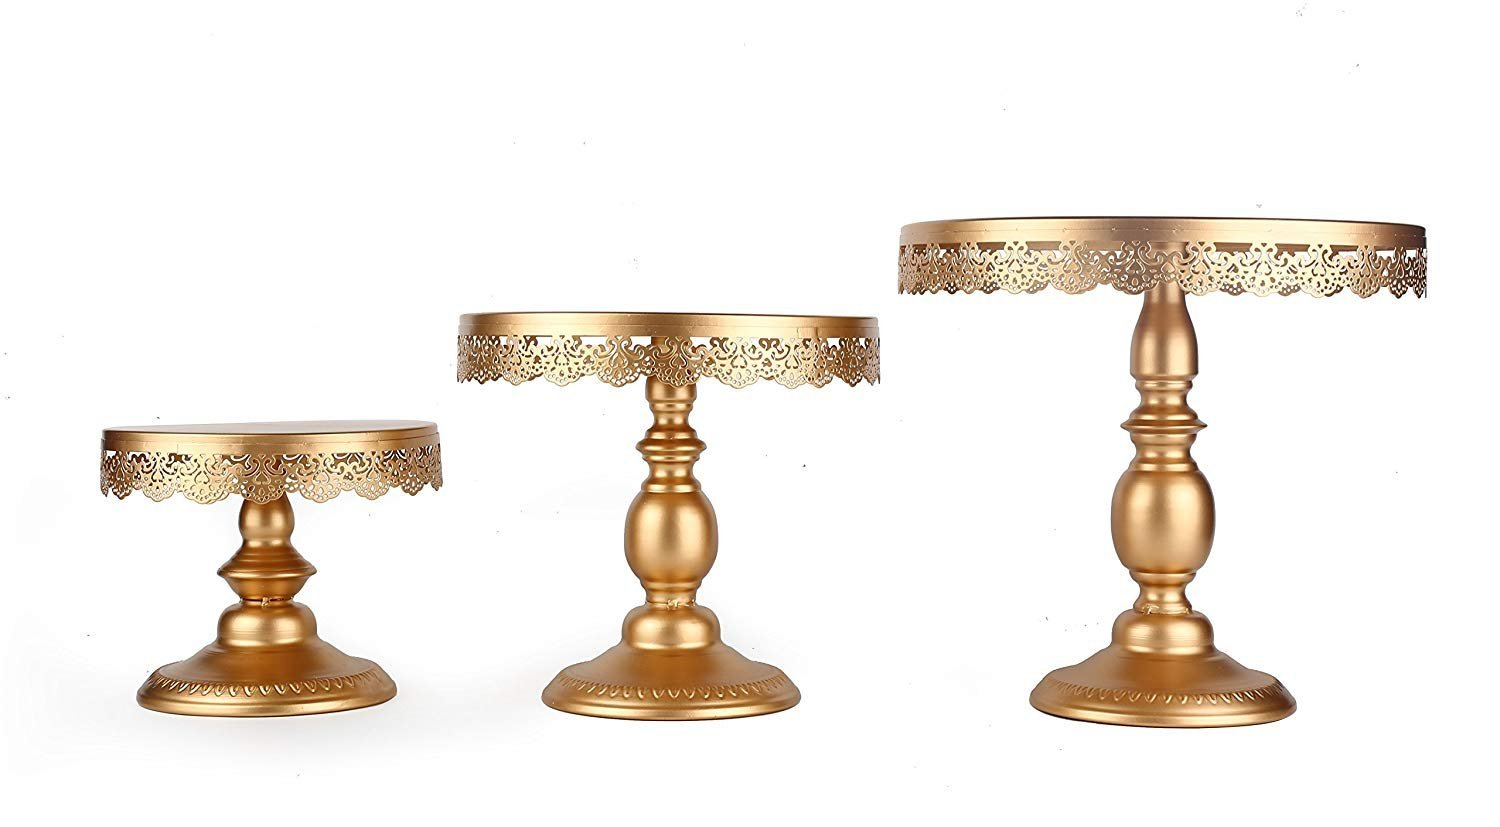 NITORA 3 Set Gold Metal Cake Stand, Round Dessert Cupcake Pedestal Display Plate for Wedding Birthday Party